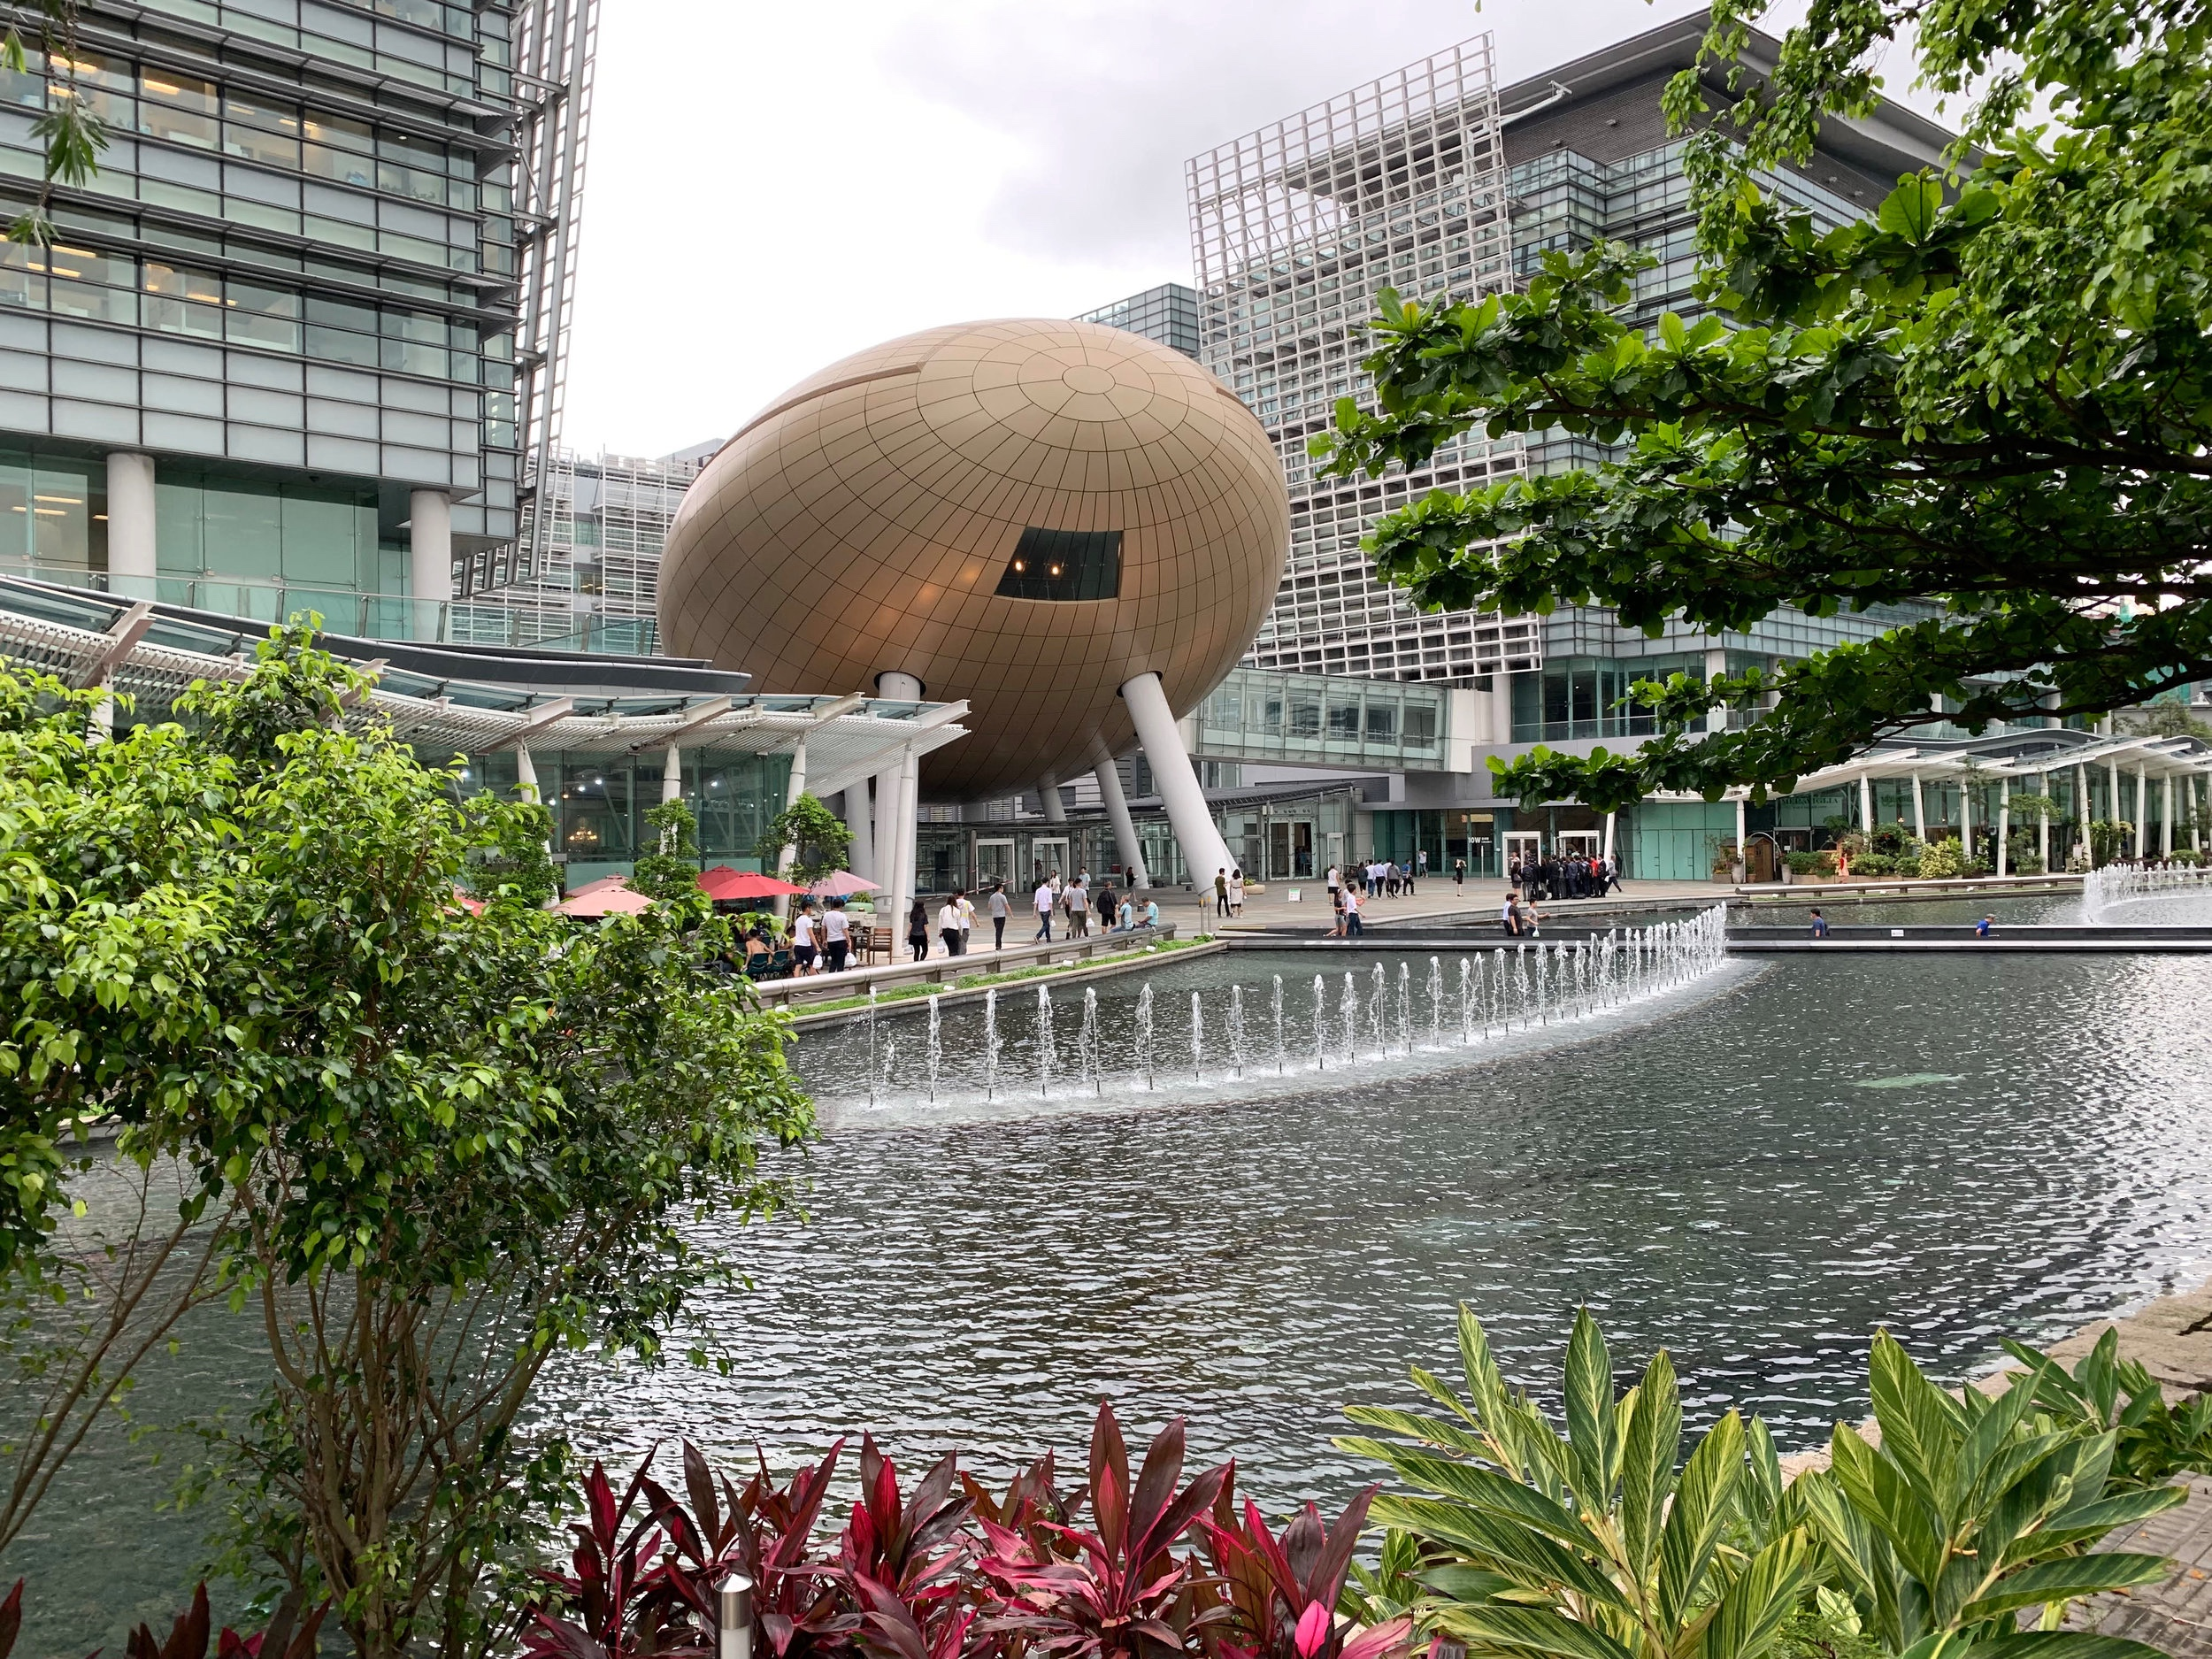 Isaac works in the Hong Kong Science and Technology park.